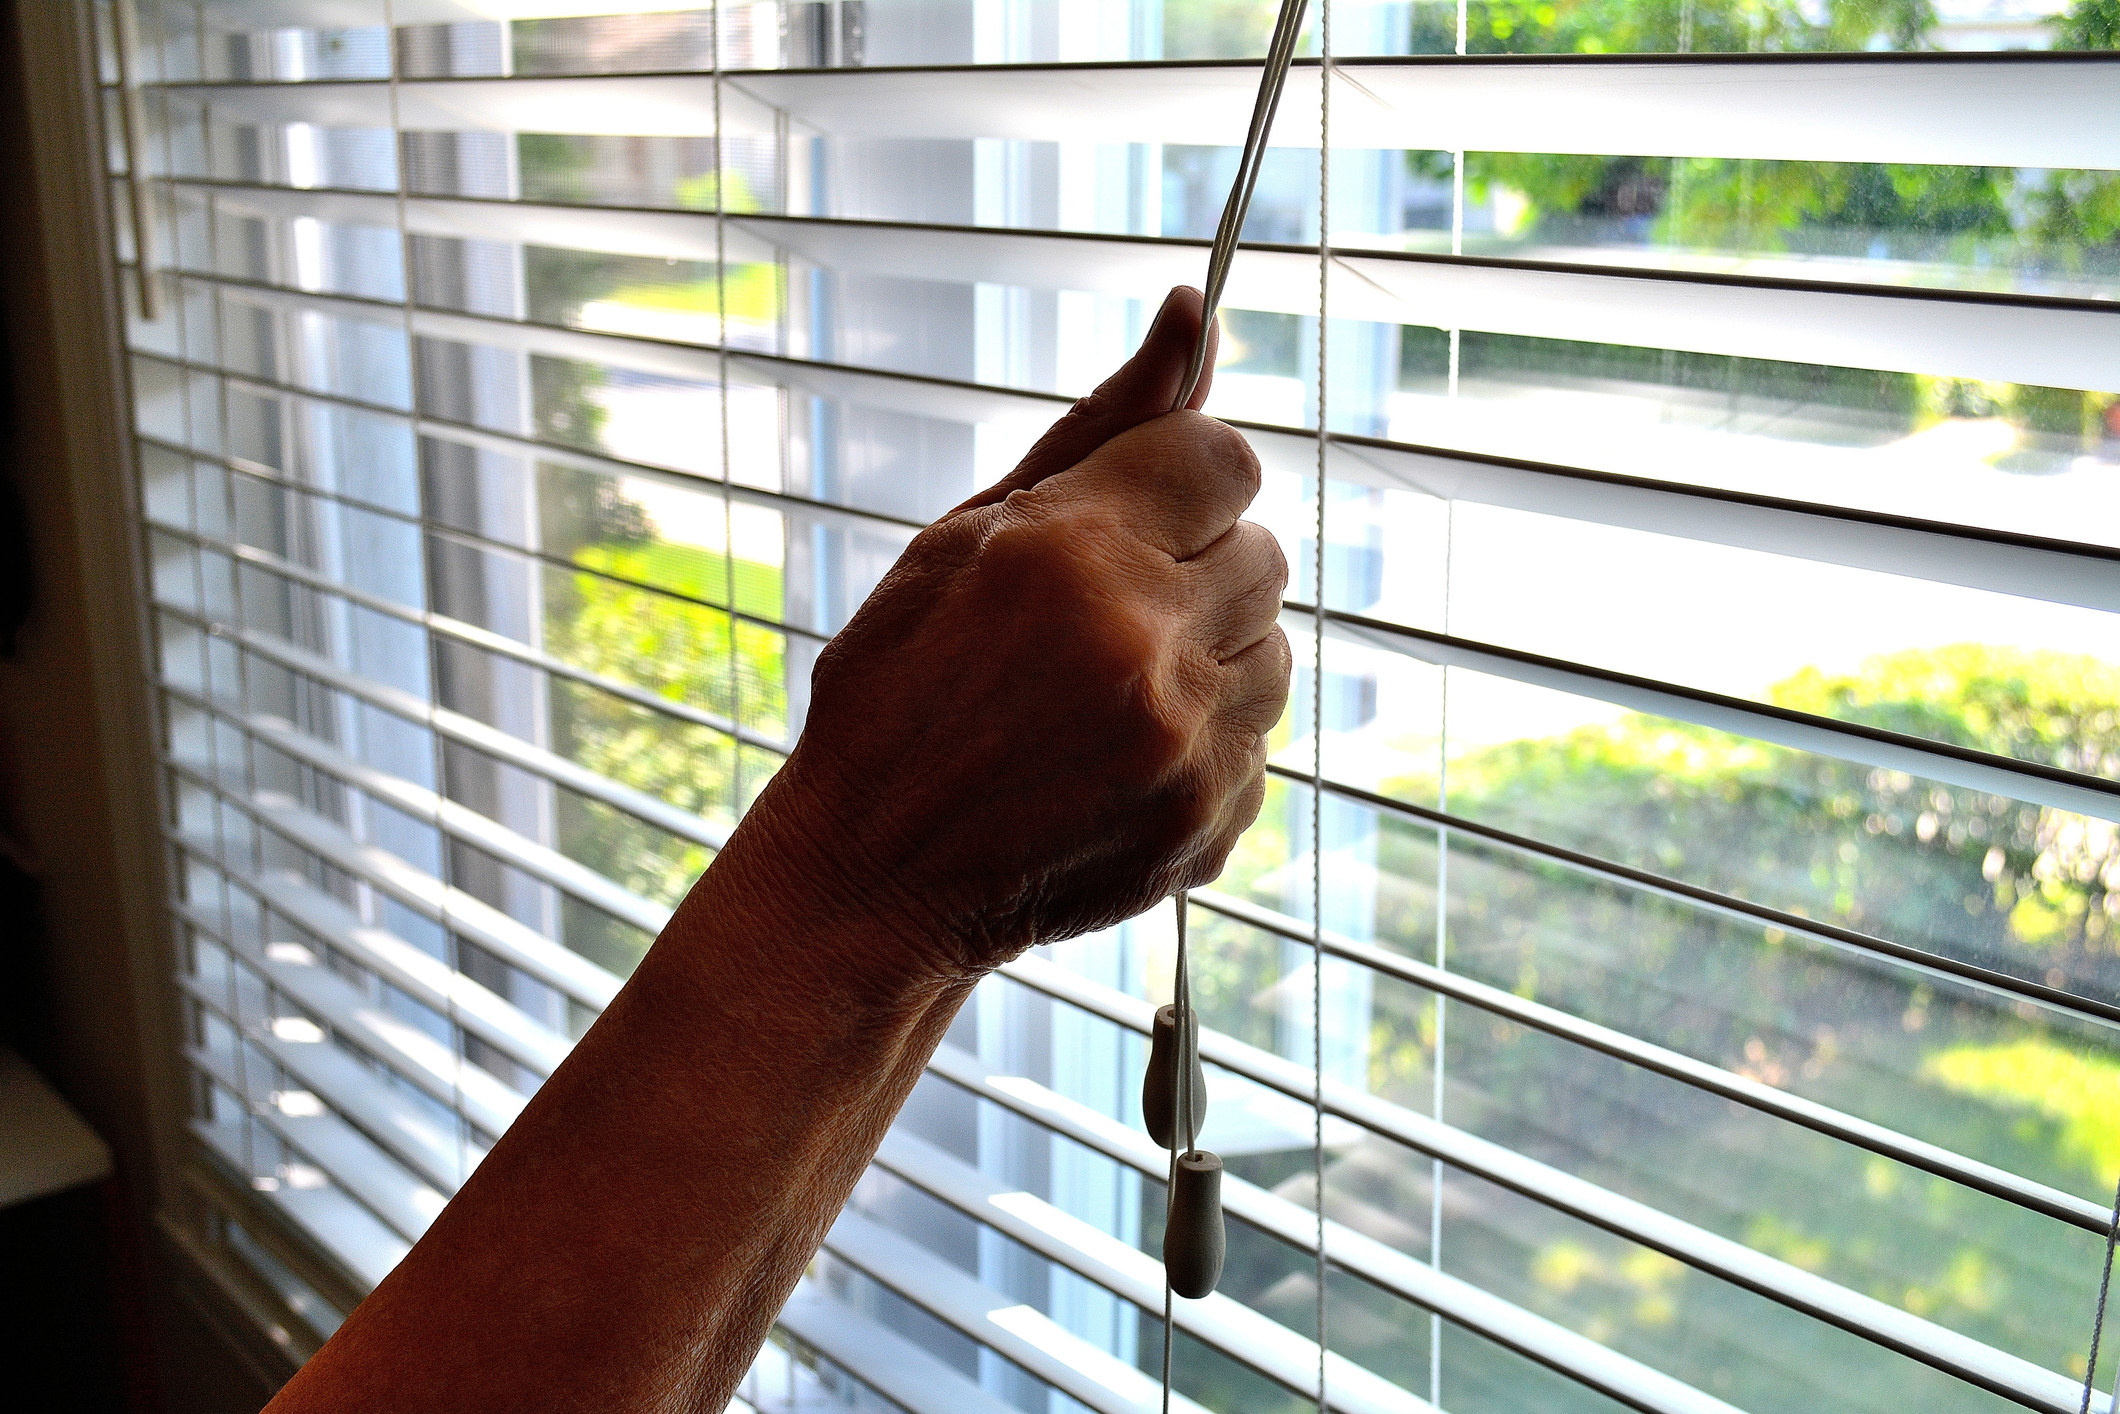 Person drawing the blinds on a bright day